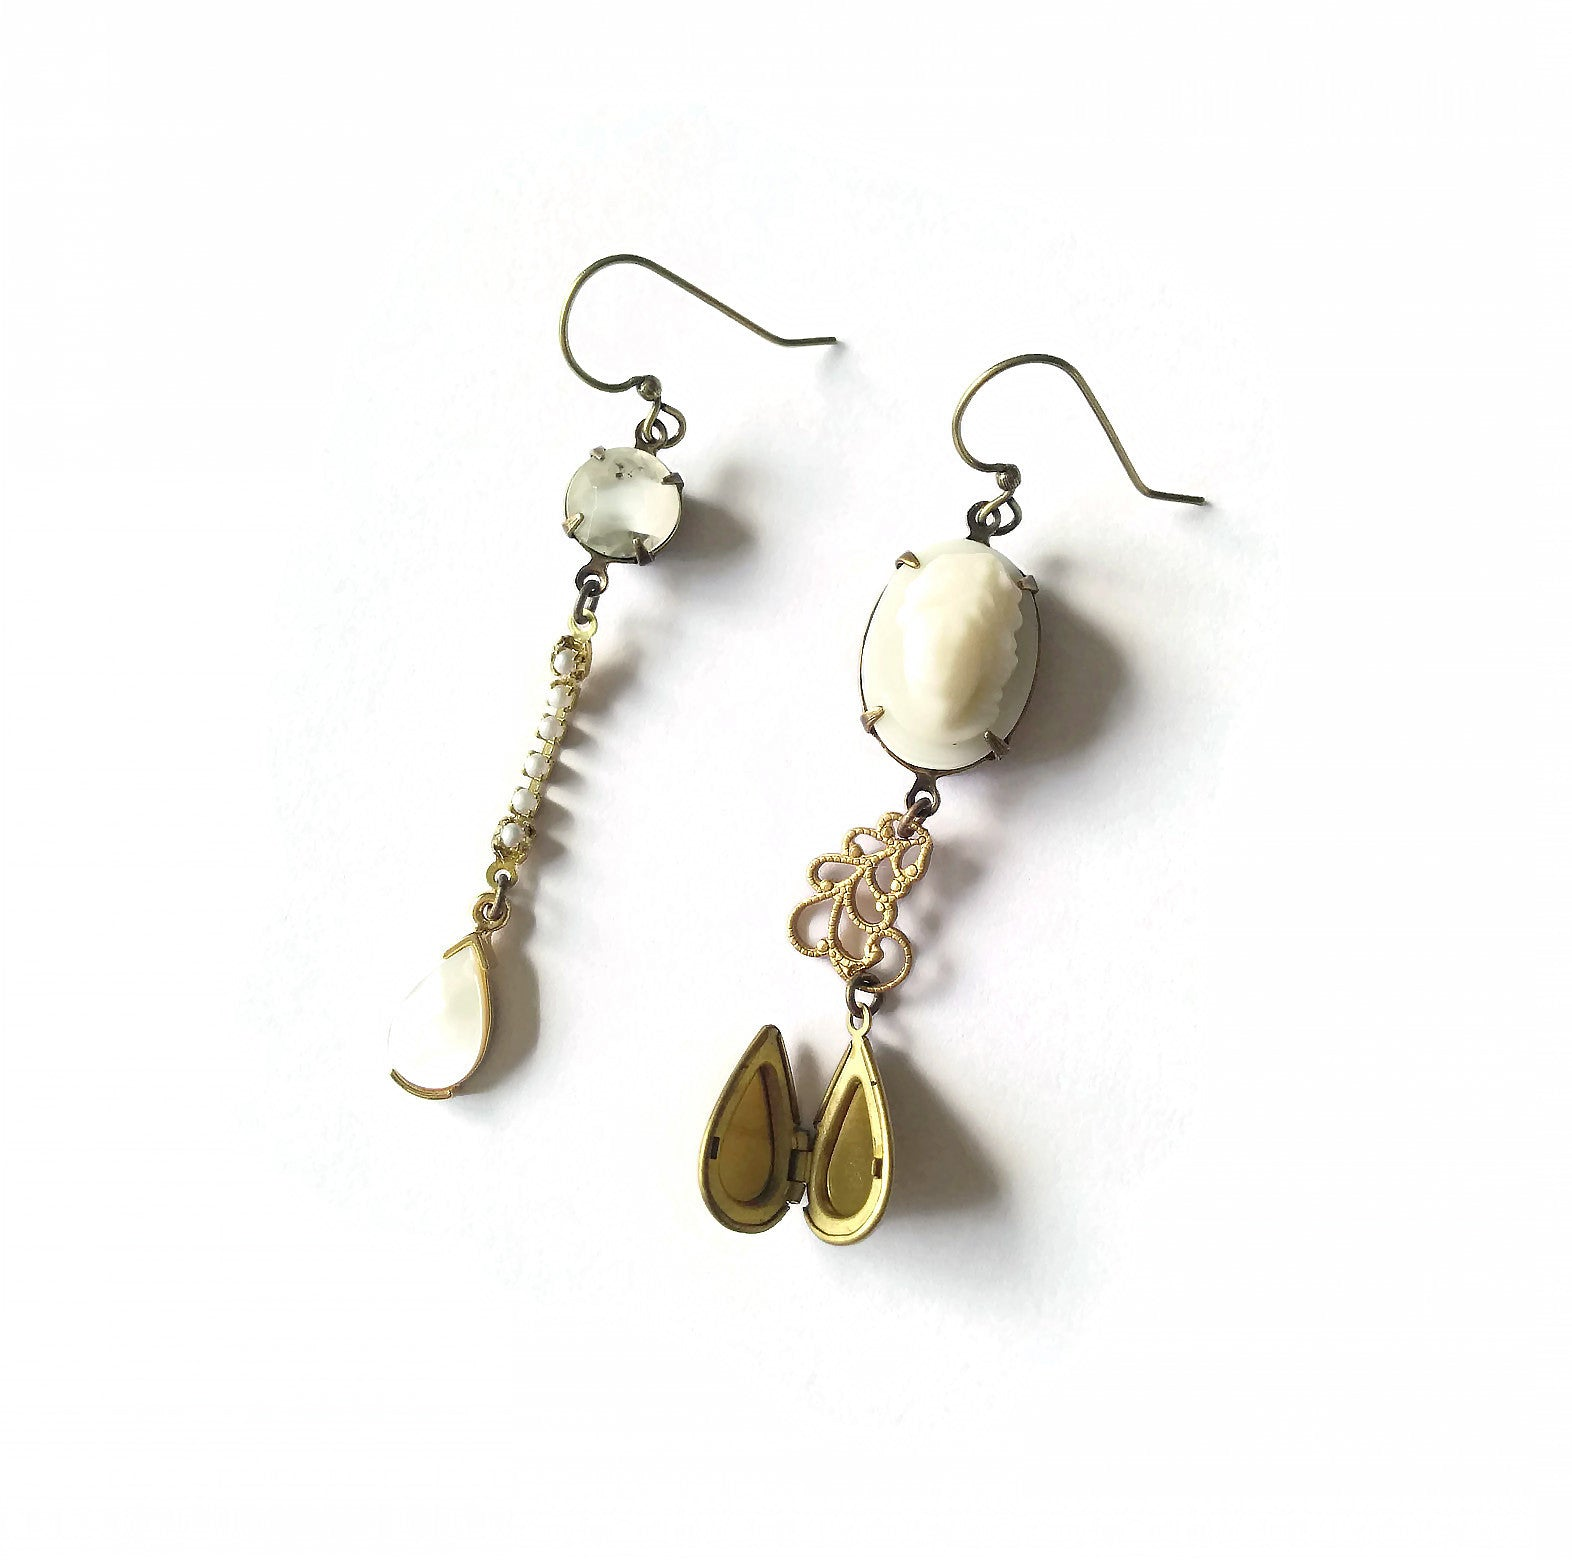 Mismatched earrings with cameo